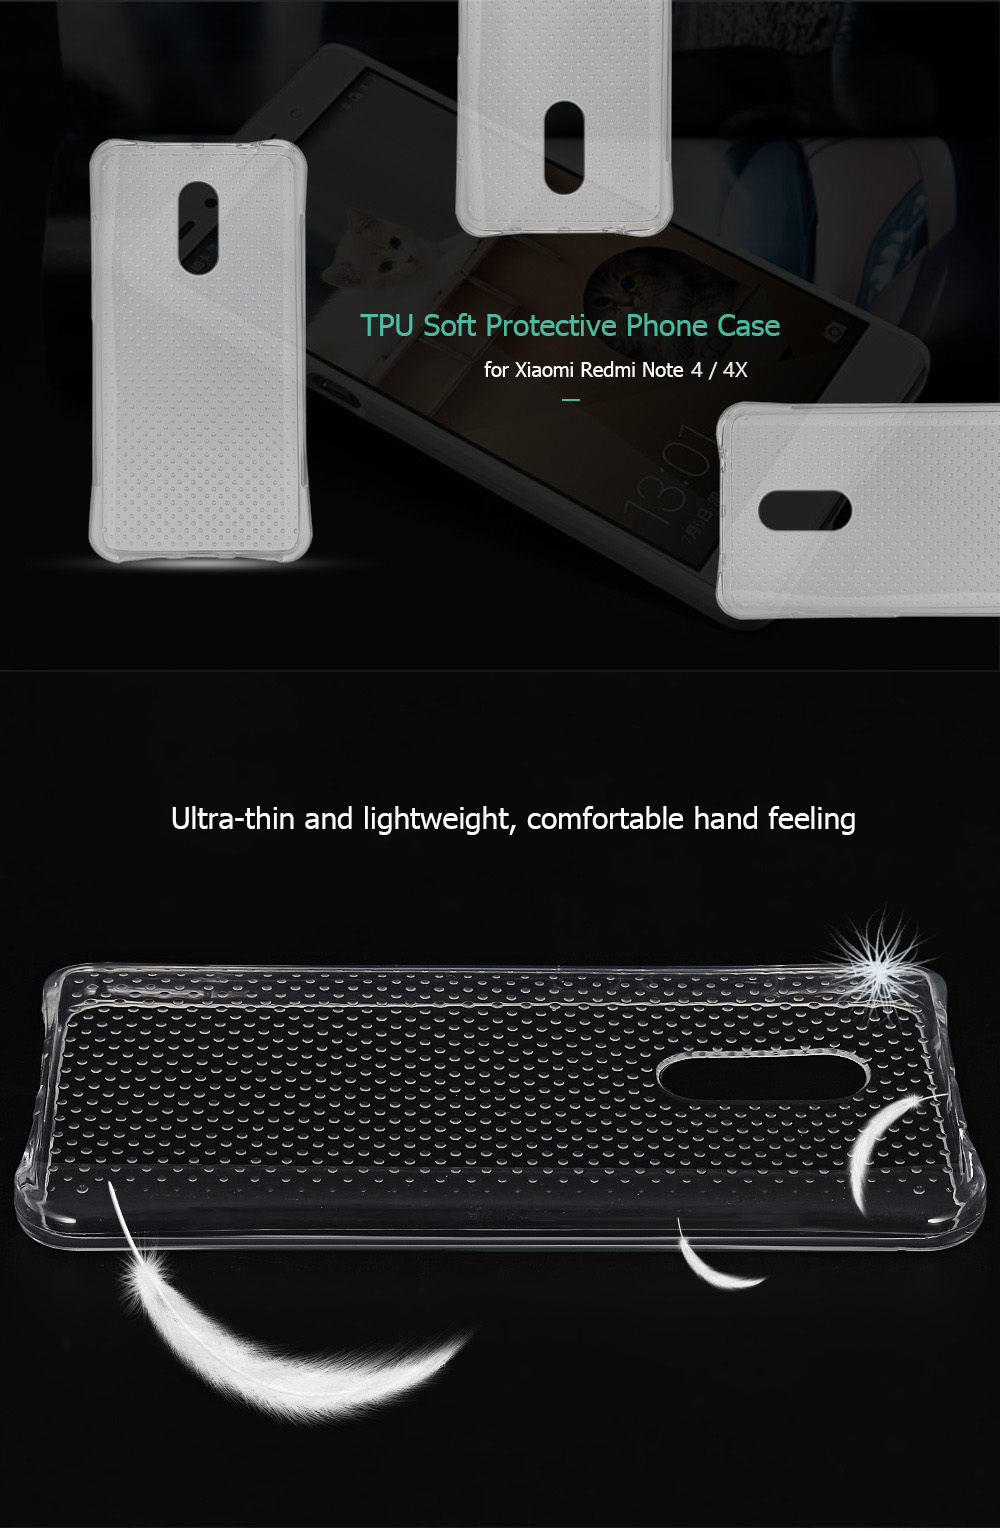 Transparent TPU Soft Case Protective Cover for Xiaomi Redmi Note 4 / 4X Salient Points Design Phone Protector